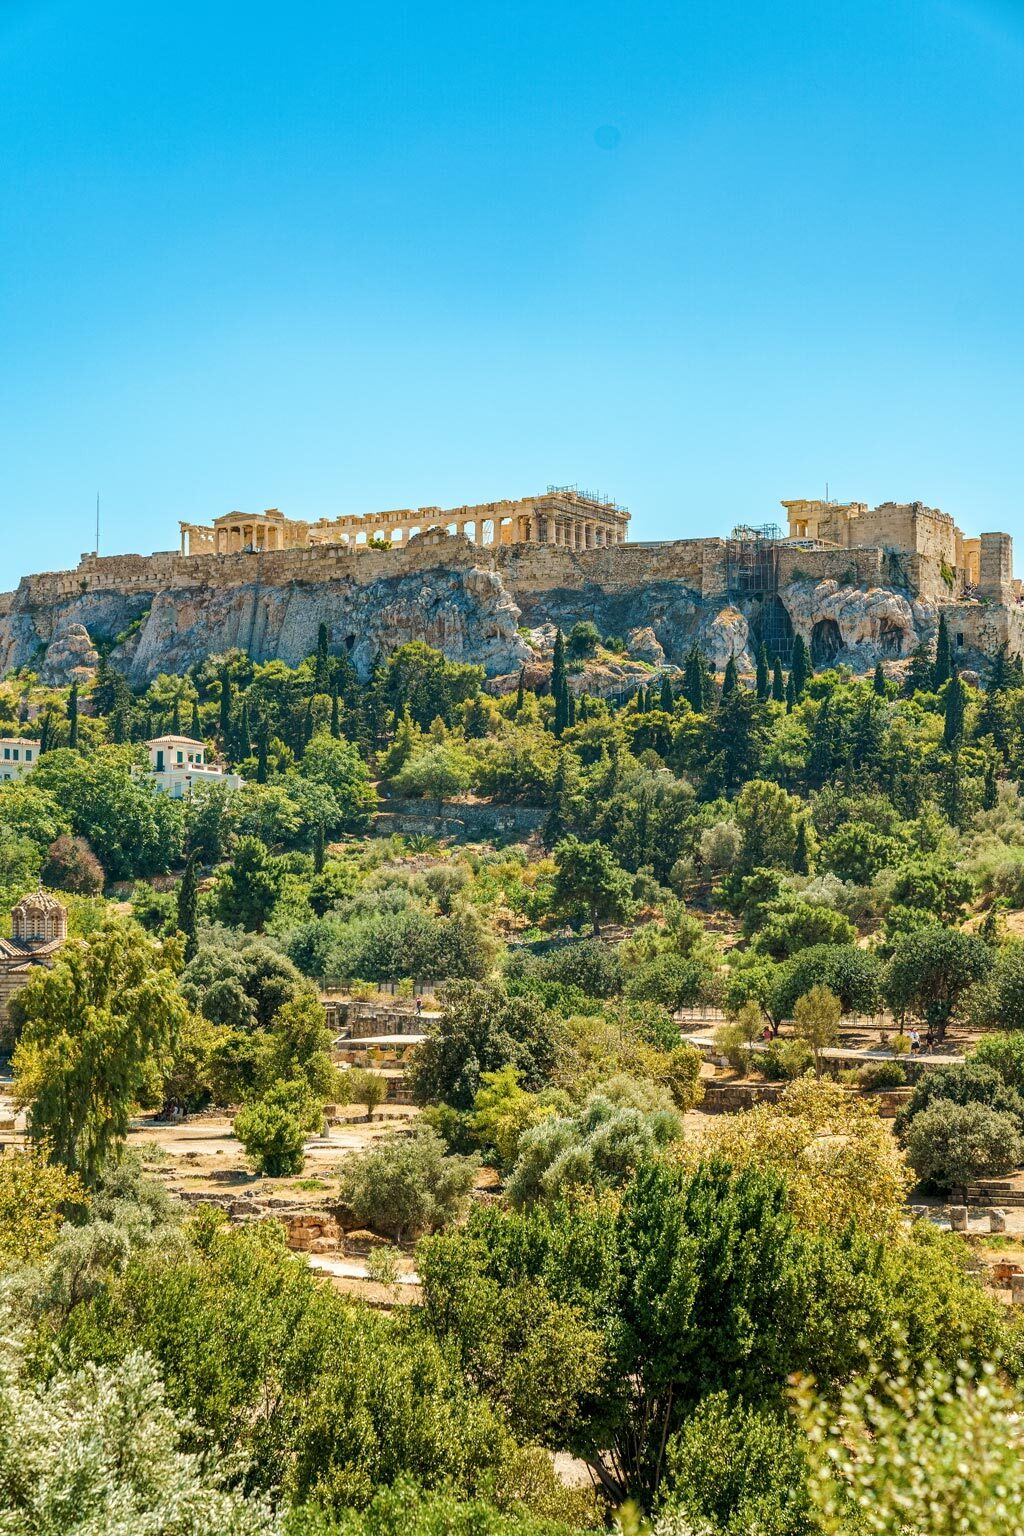 Acropolis of Athens Seen from Temple of Hephaestus